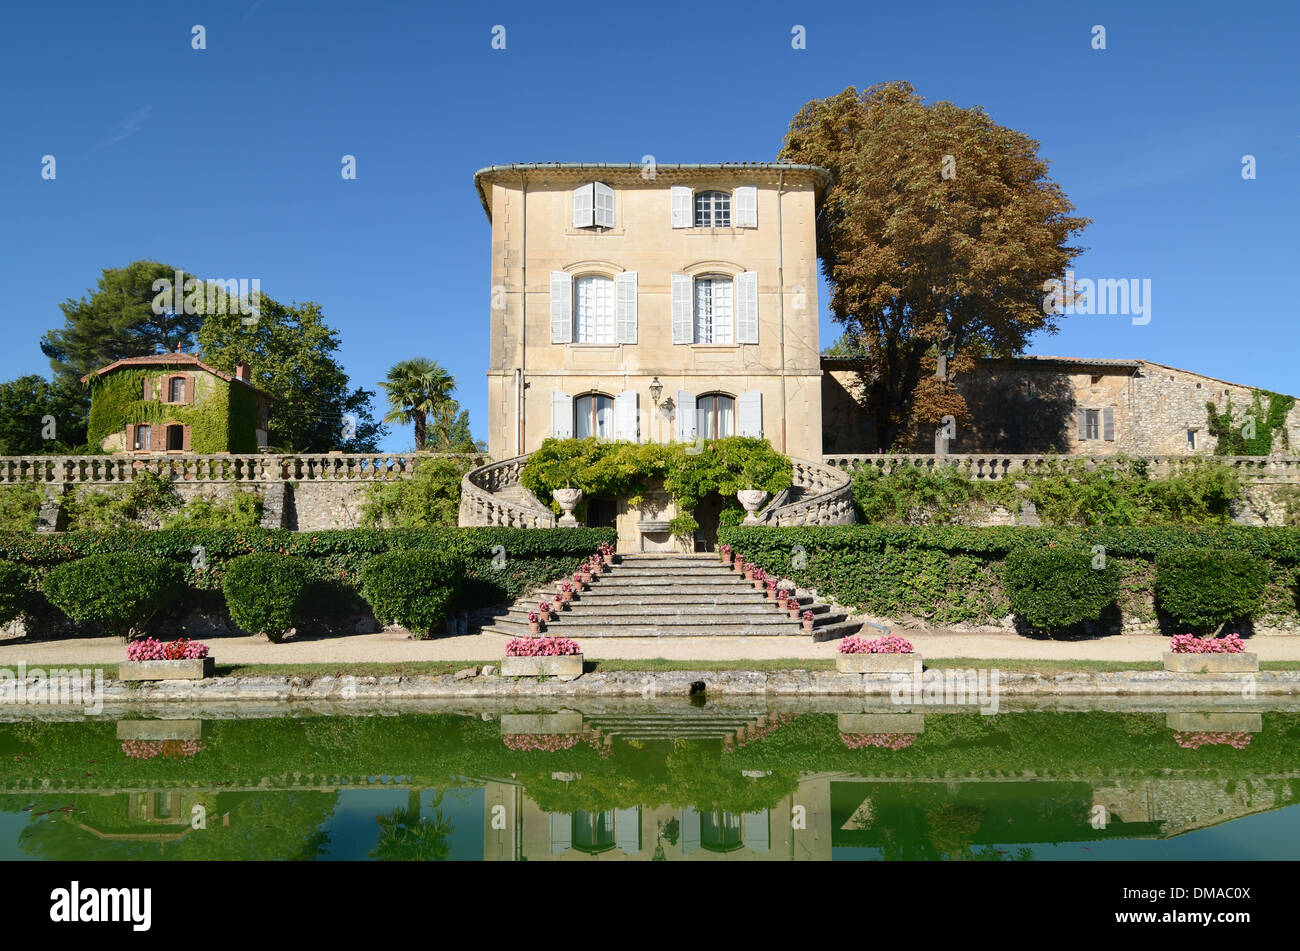 Château d'Arnajon Country House or Estate & Formal Water Garden Le Puy-Sainte-Réparade Provence France - Stock Image